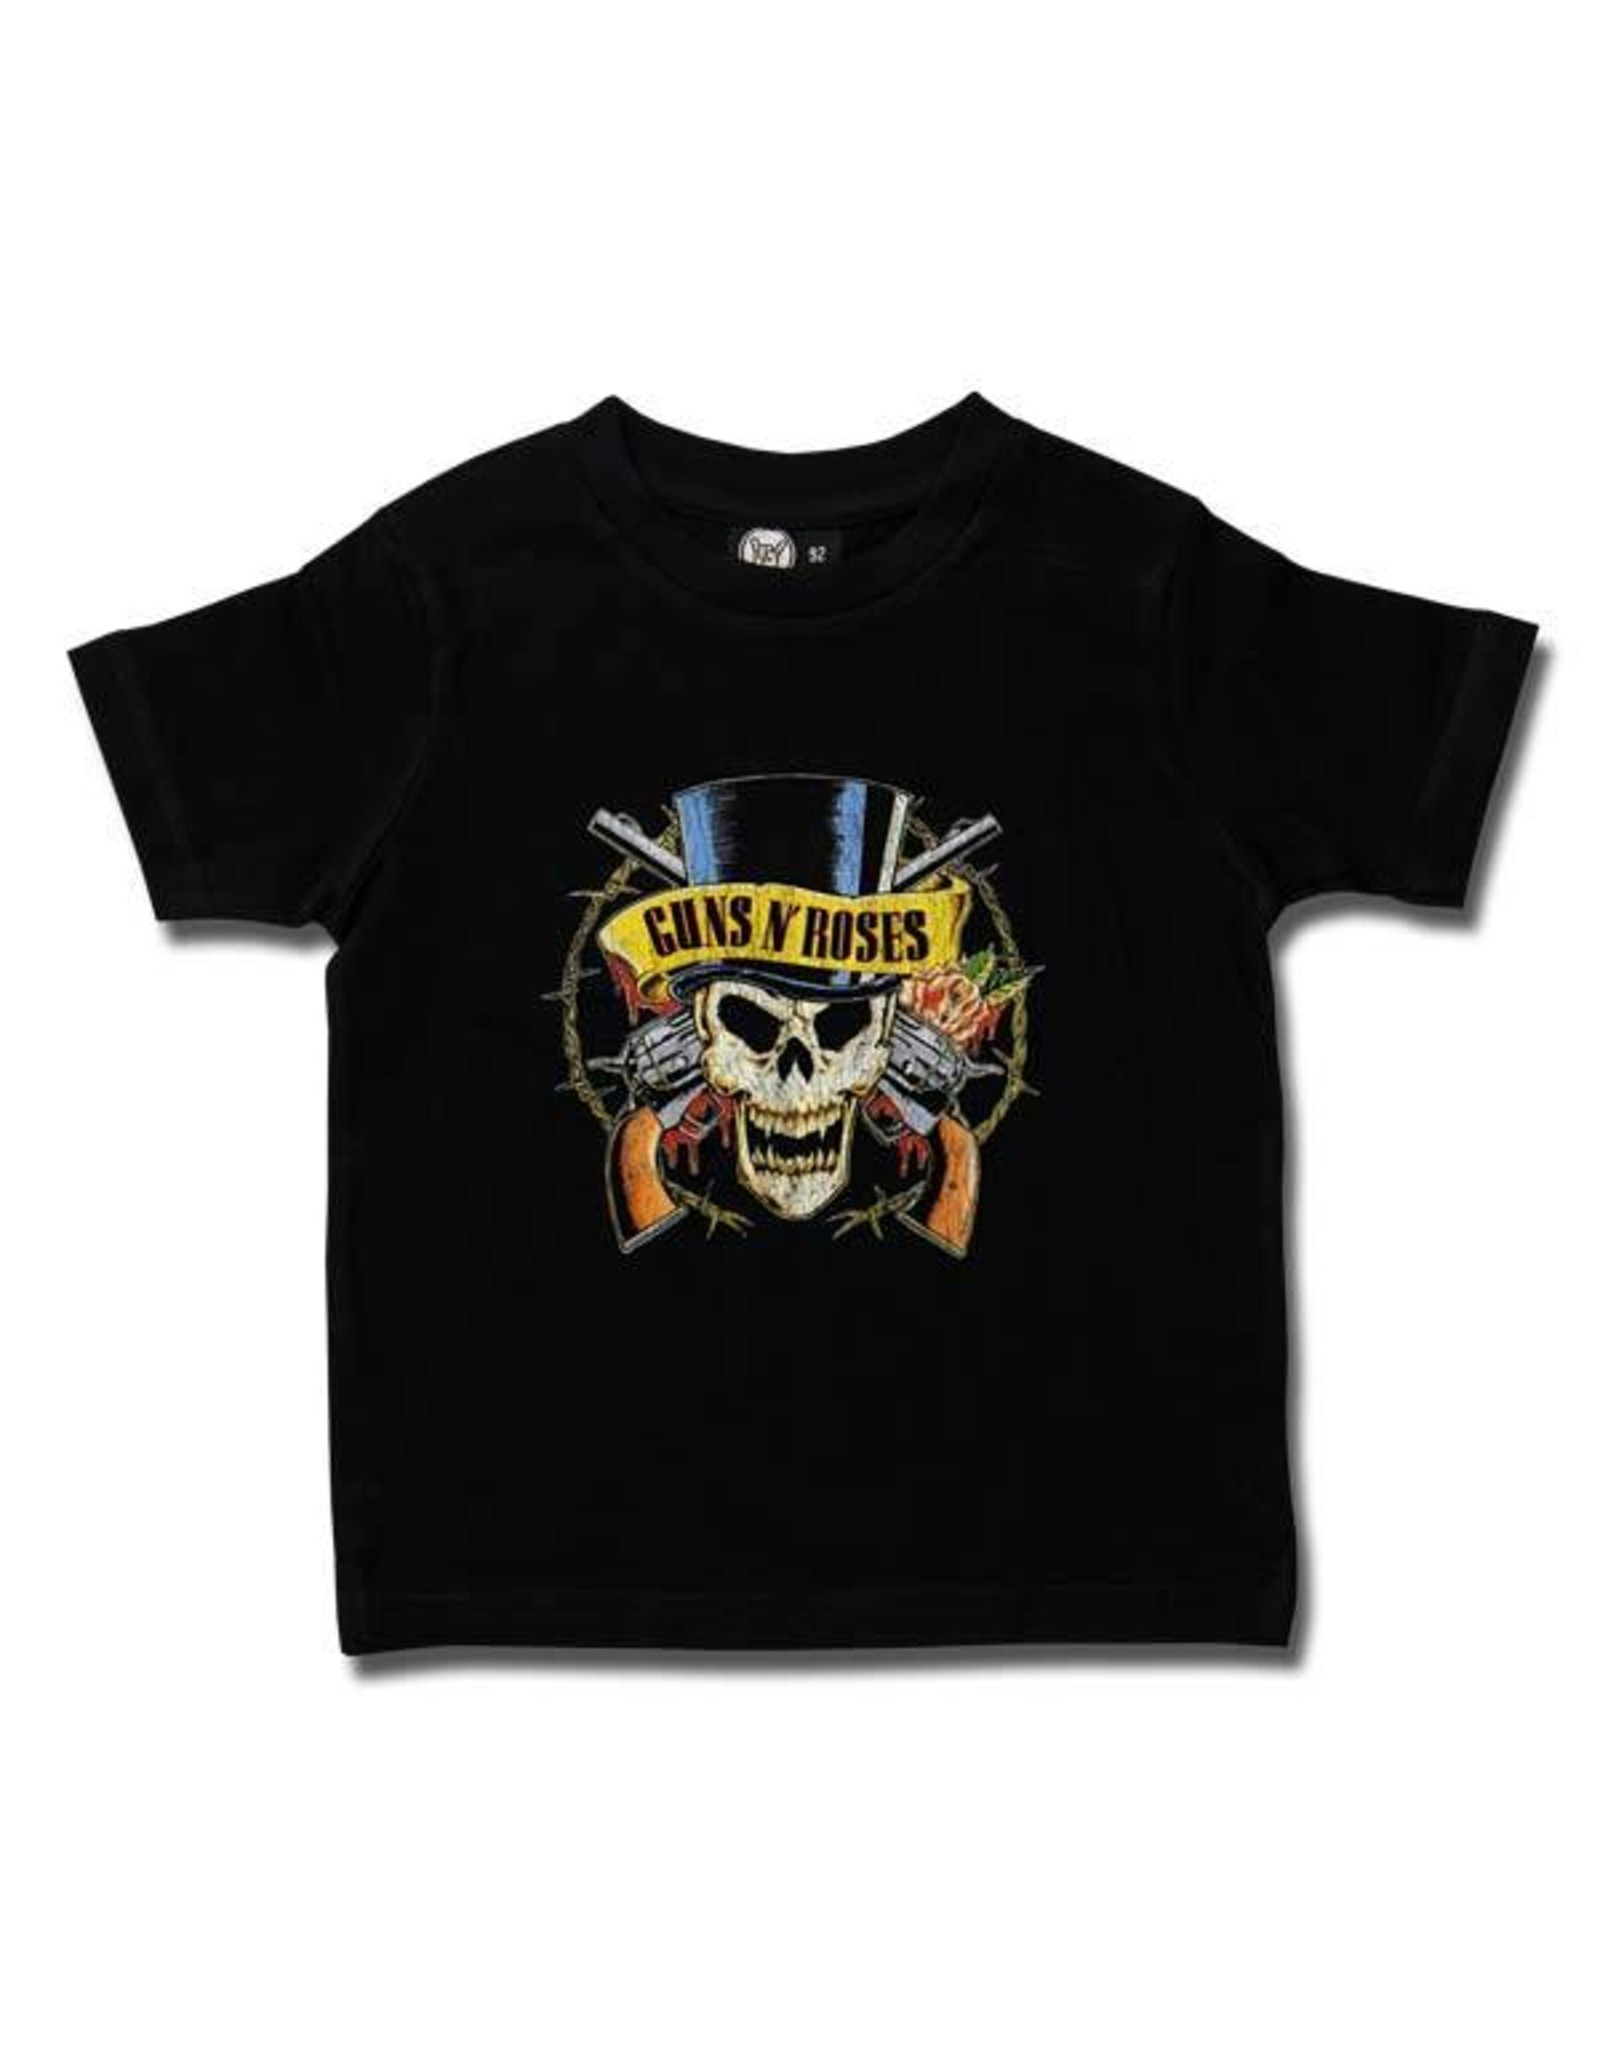 Guns 'n Roses (TopHat) - Kids T-Shirt